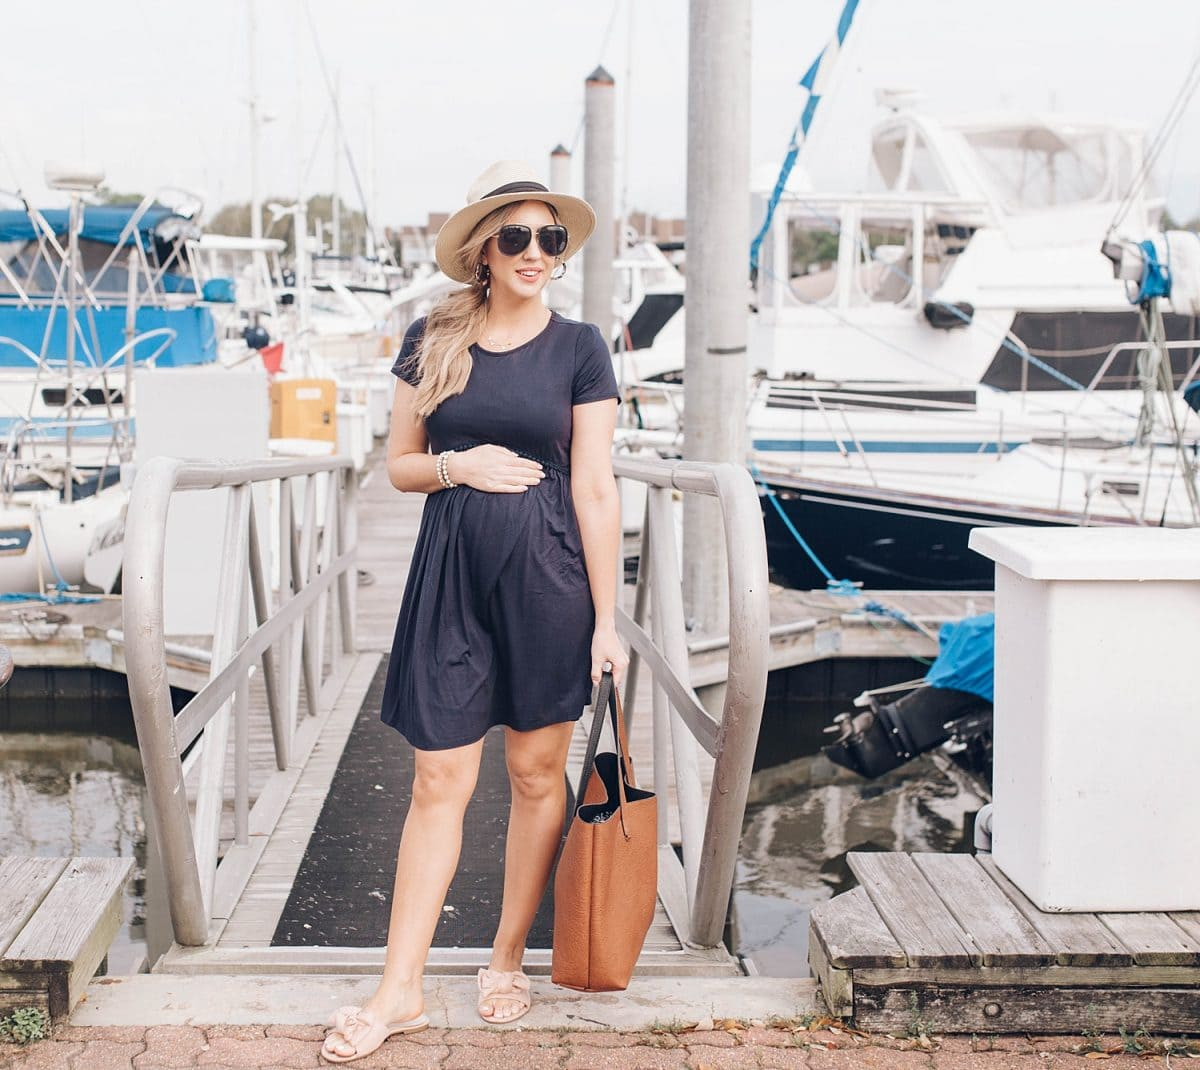 c8d37e4eb6 Houston lifestyle blogger Meg O. on the Go shares her favorite spring  maternity dresses -